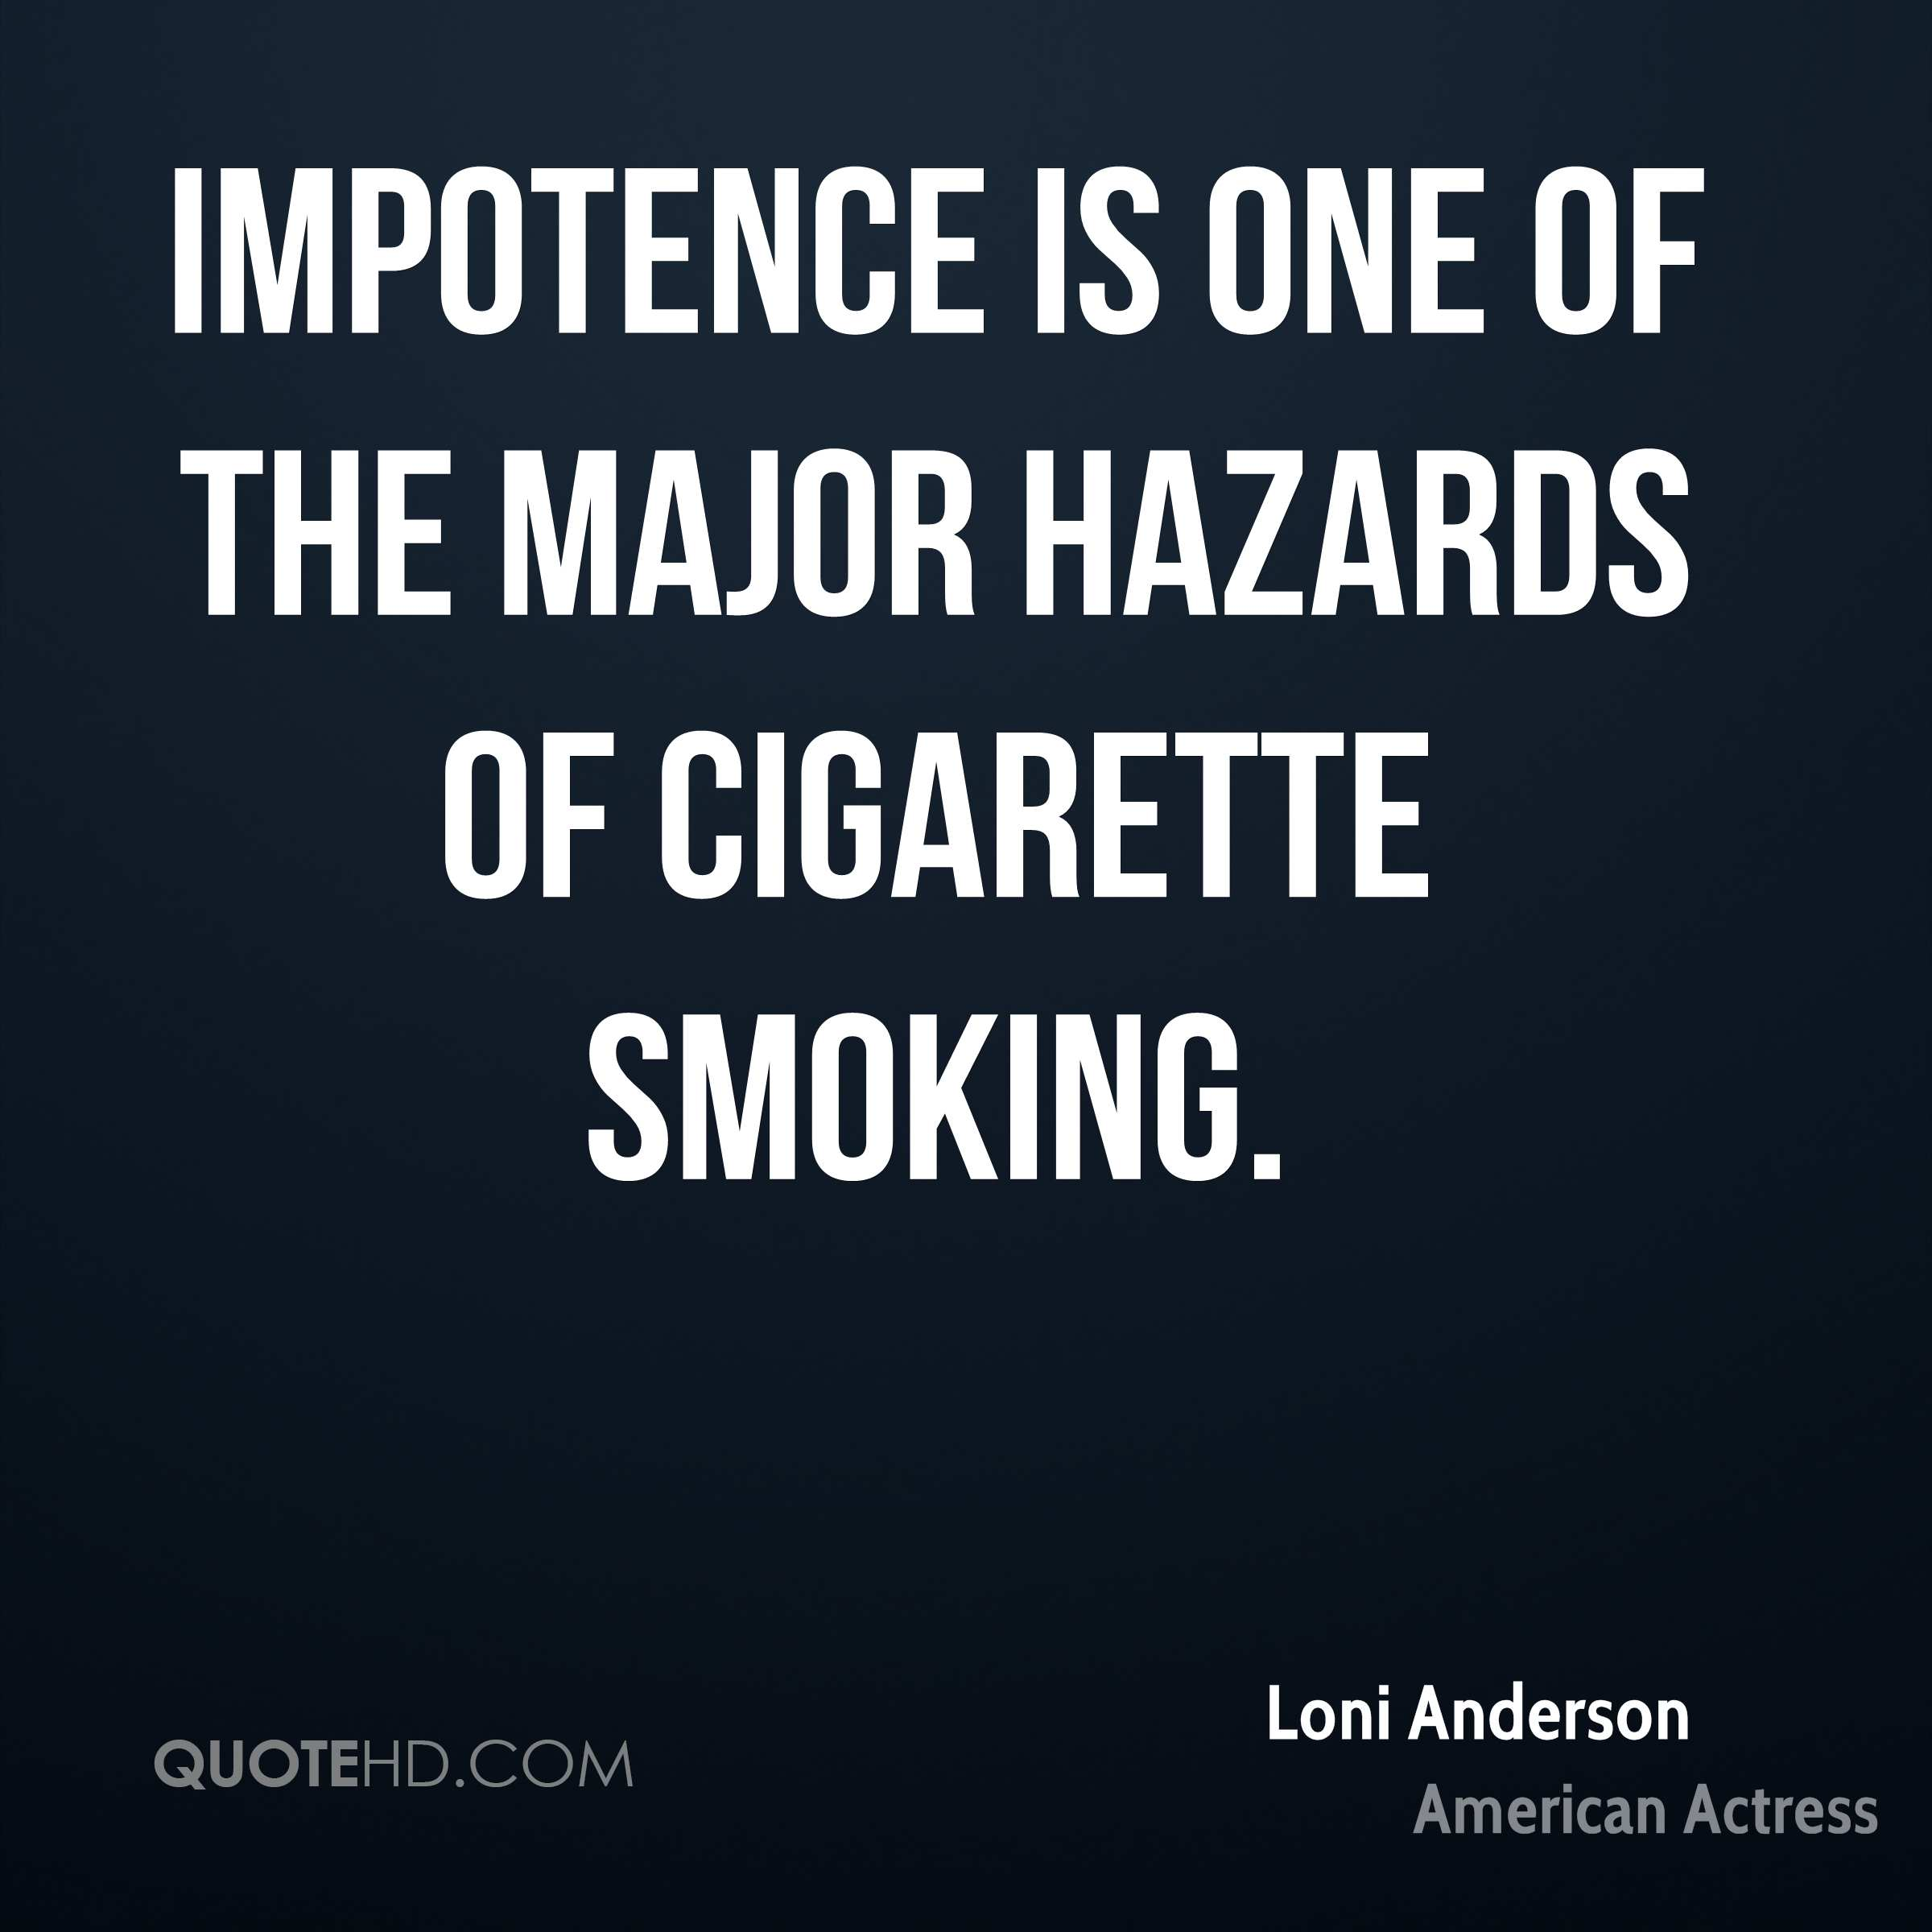 Impotence is one of the major hazards of cigarette smoking.